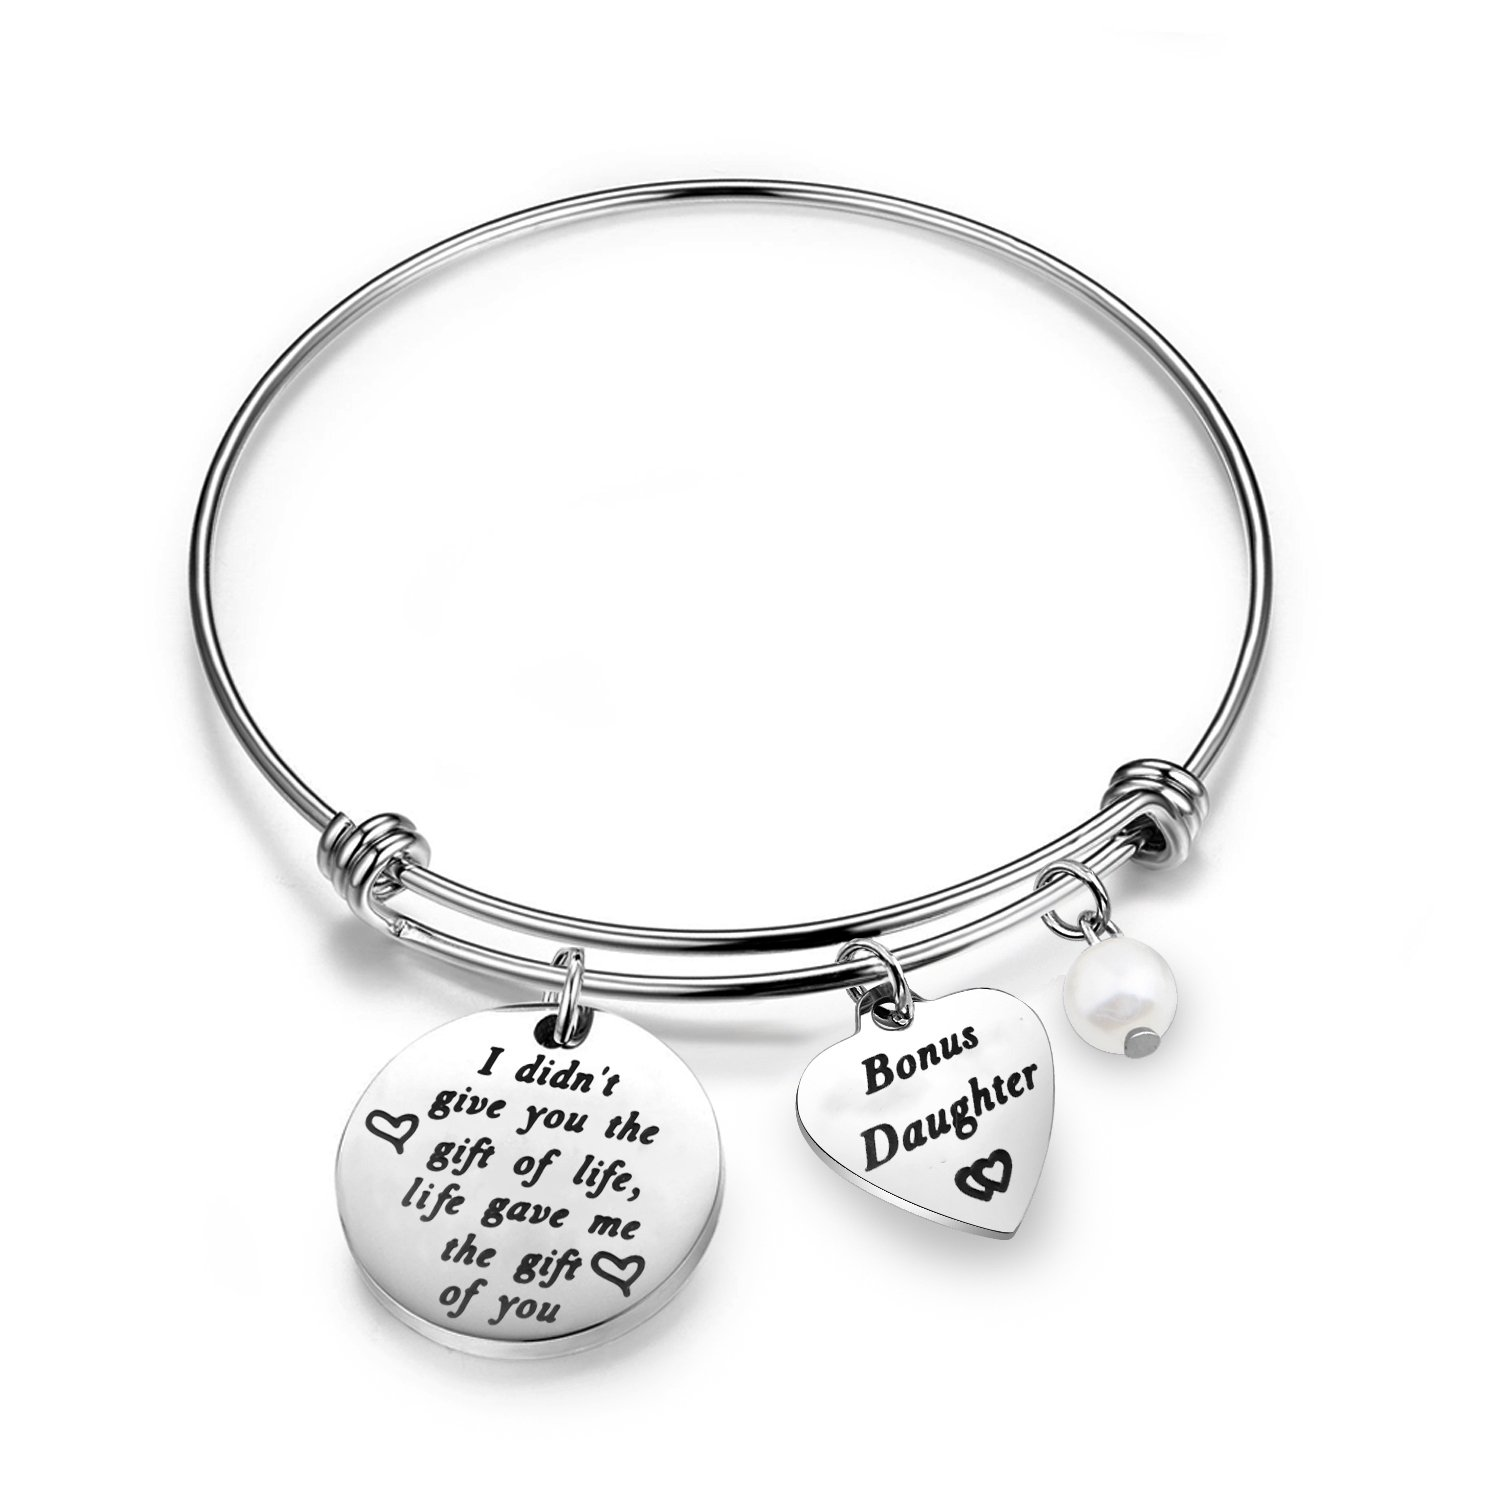 Zuo Bao Stepdaughter Gifts Daughter In Law Bracelet I Didn't Give You The Gift of Life Life Gave Me The Gift of You Step Daughter Gifts From Stepmom (Bracelet)